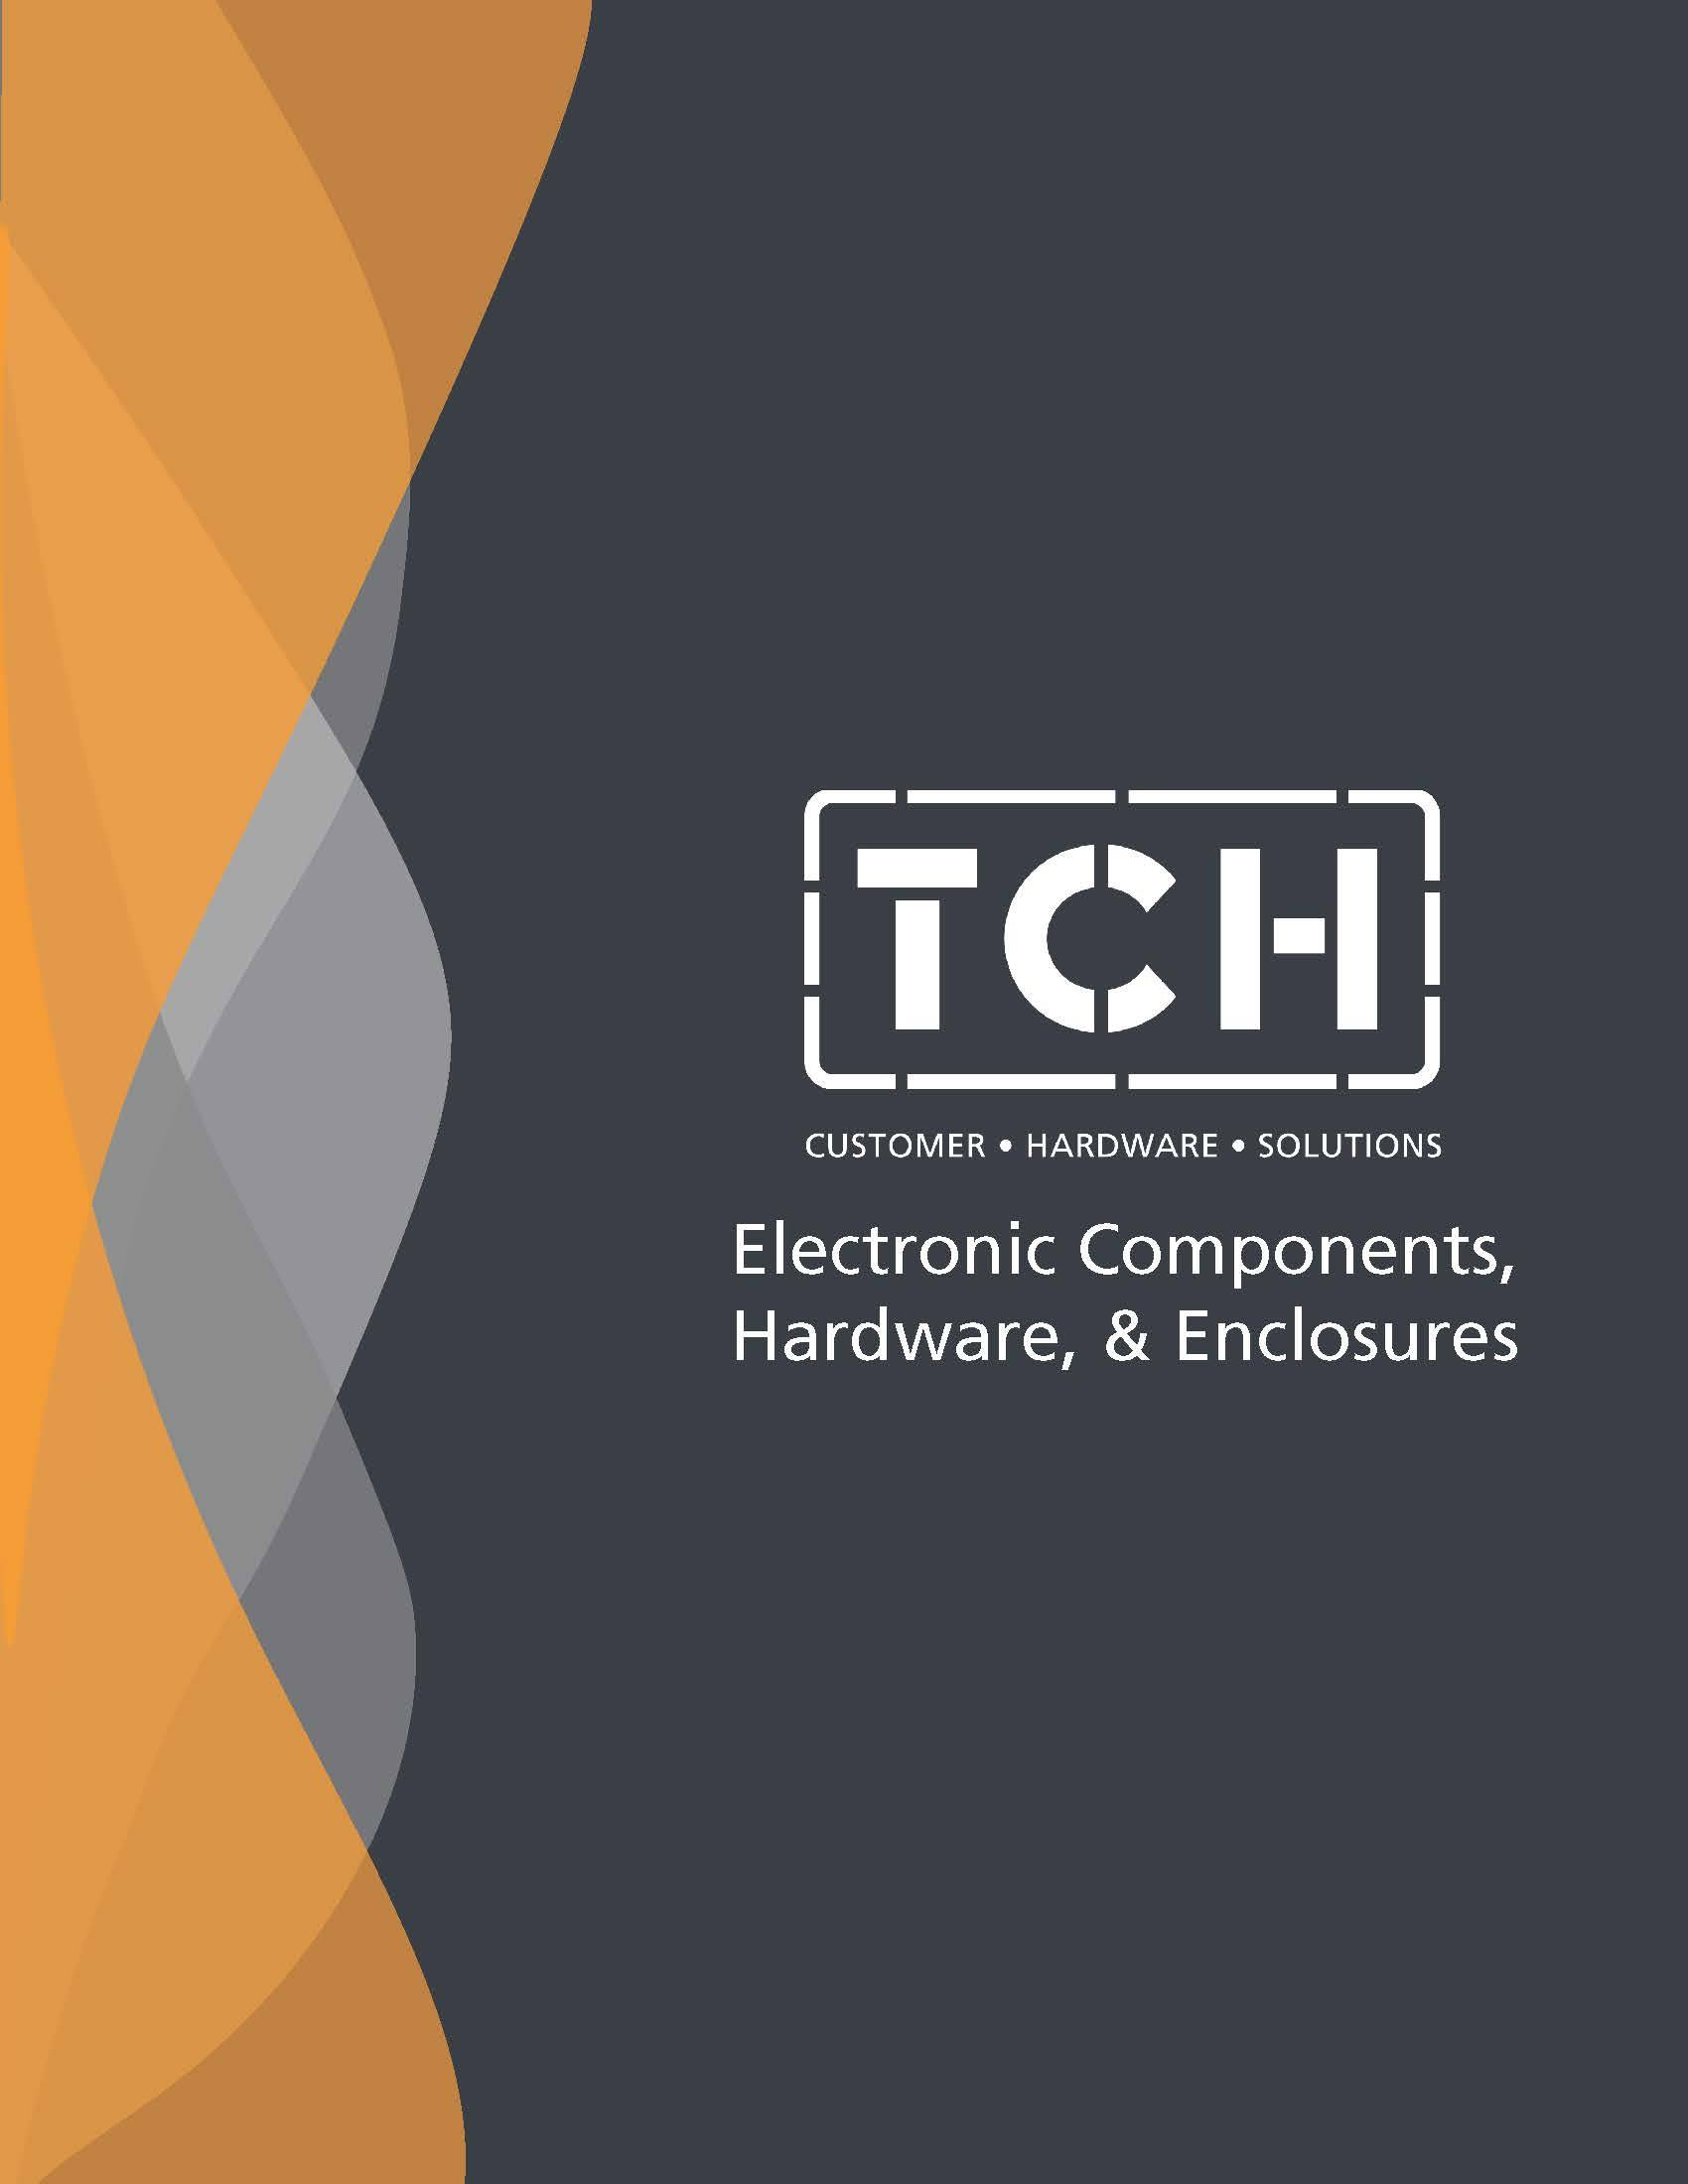 Cover of TCH's Electronic Components line card